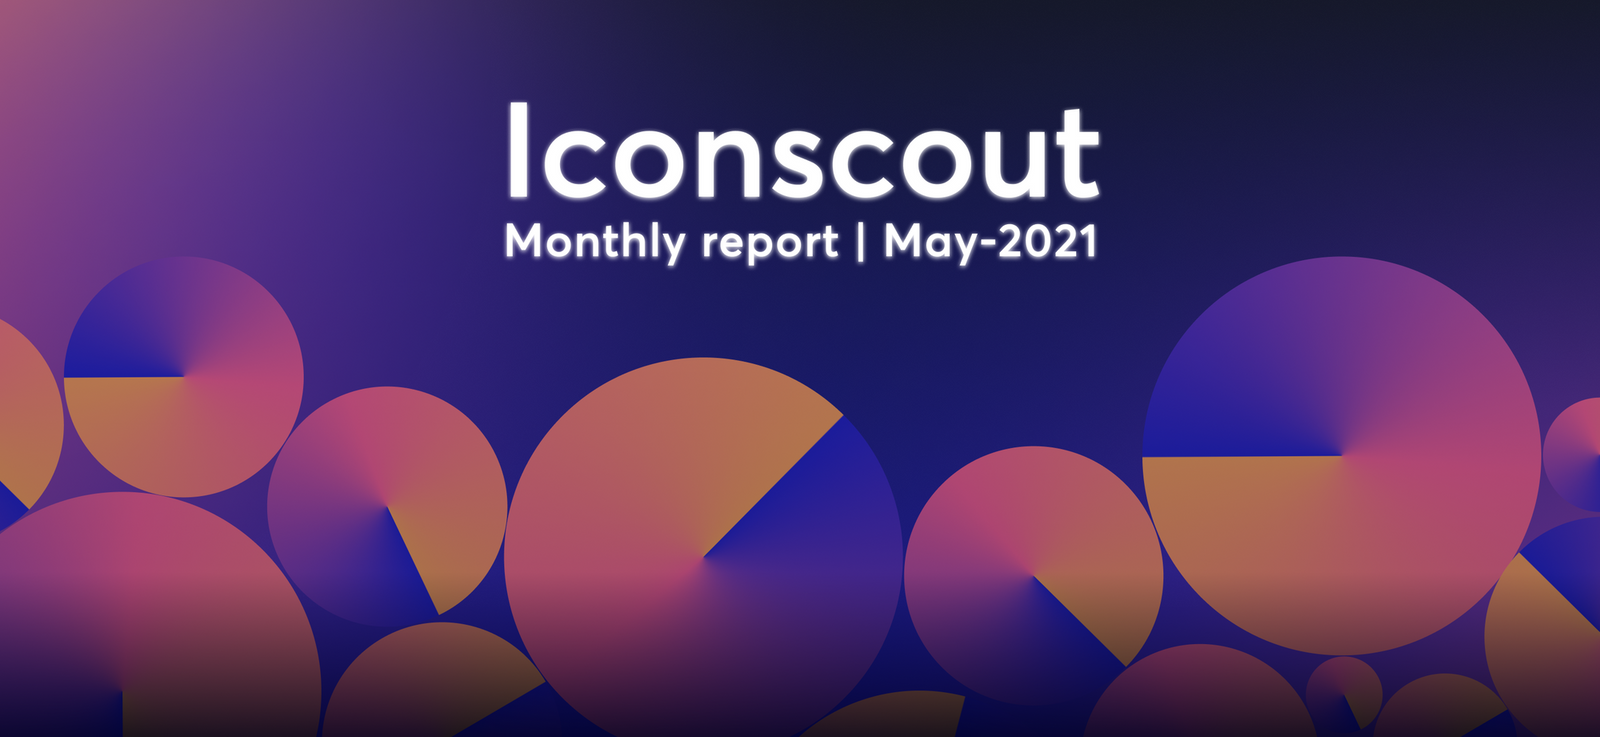 Iconscout Product Update: What's new from May'21